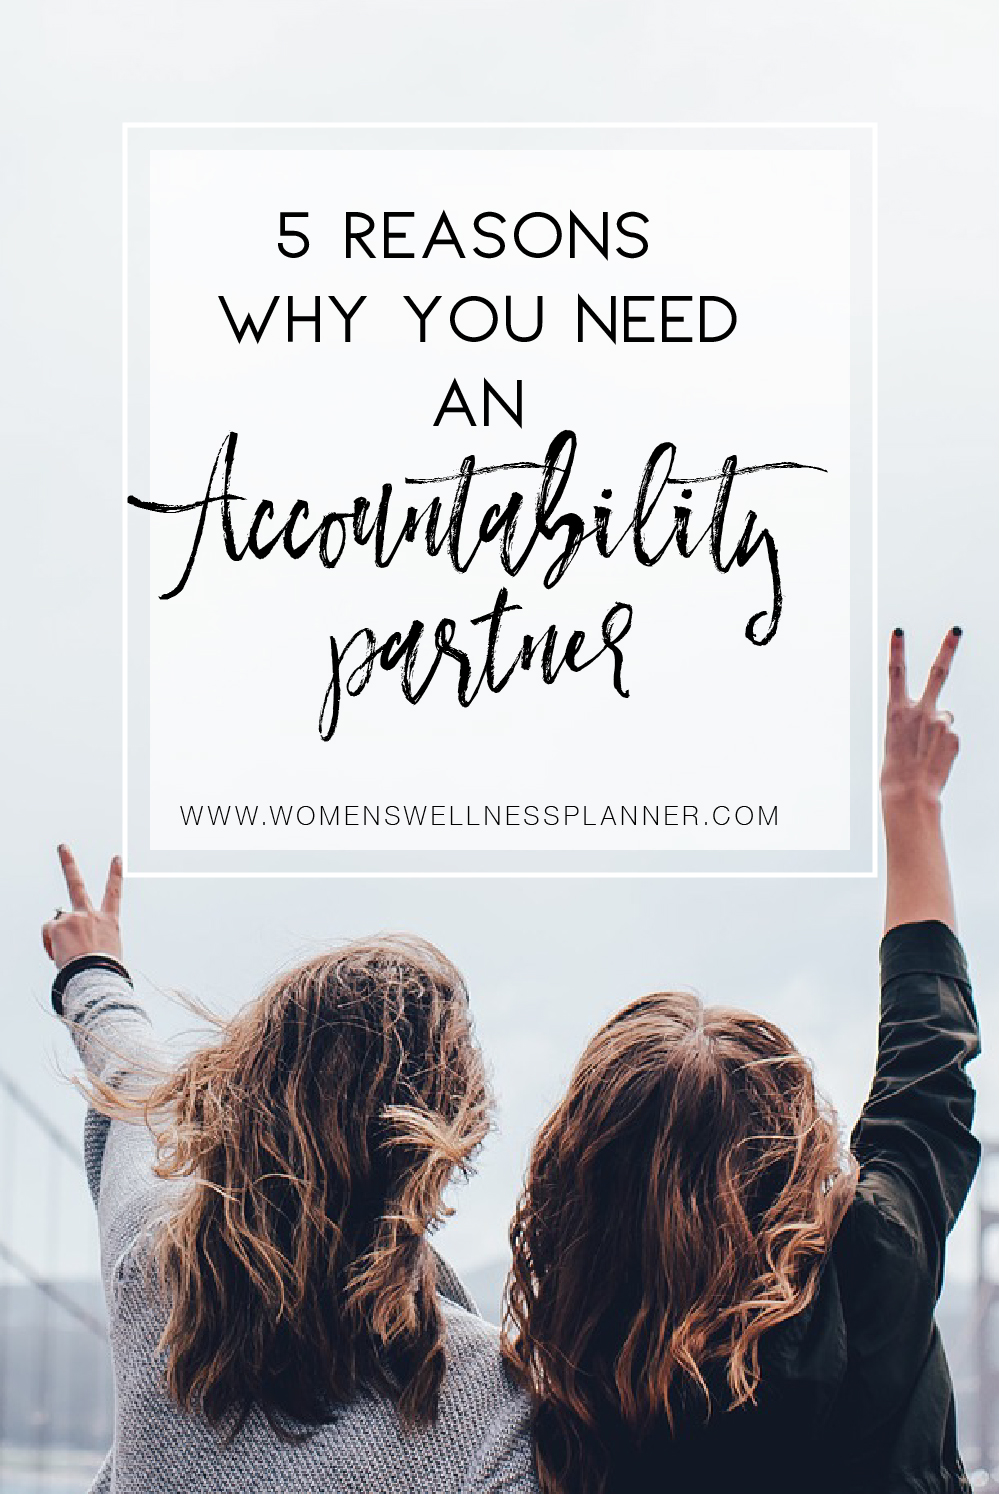 5 Reasons Why You Need An Accountability Partner | Women's Wellness Planner Blog